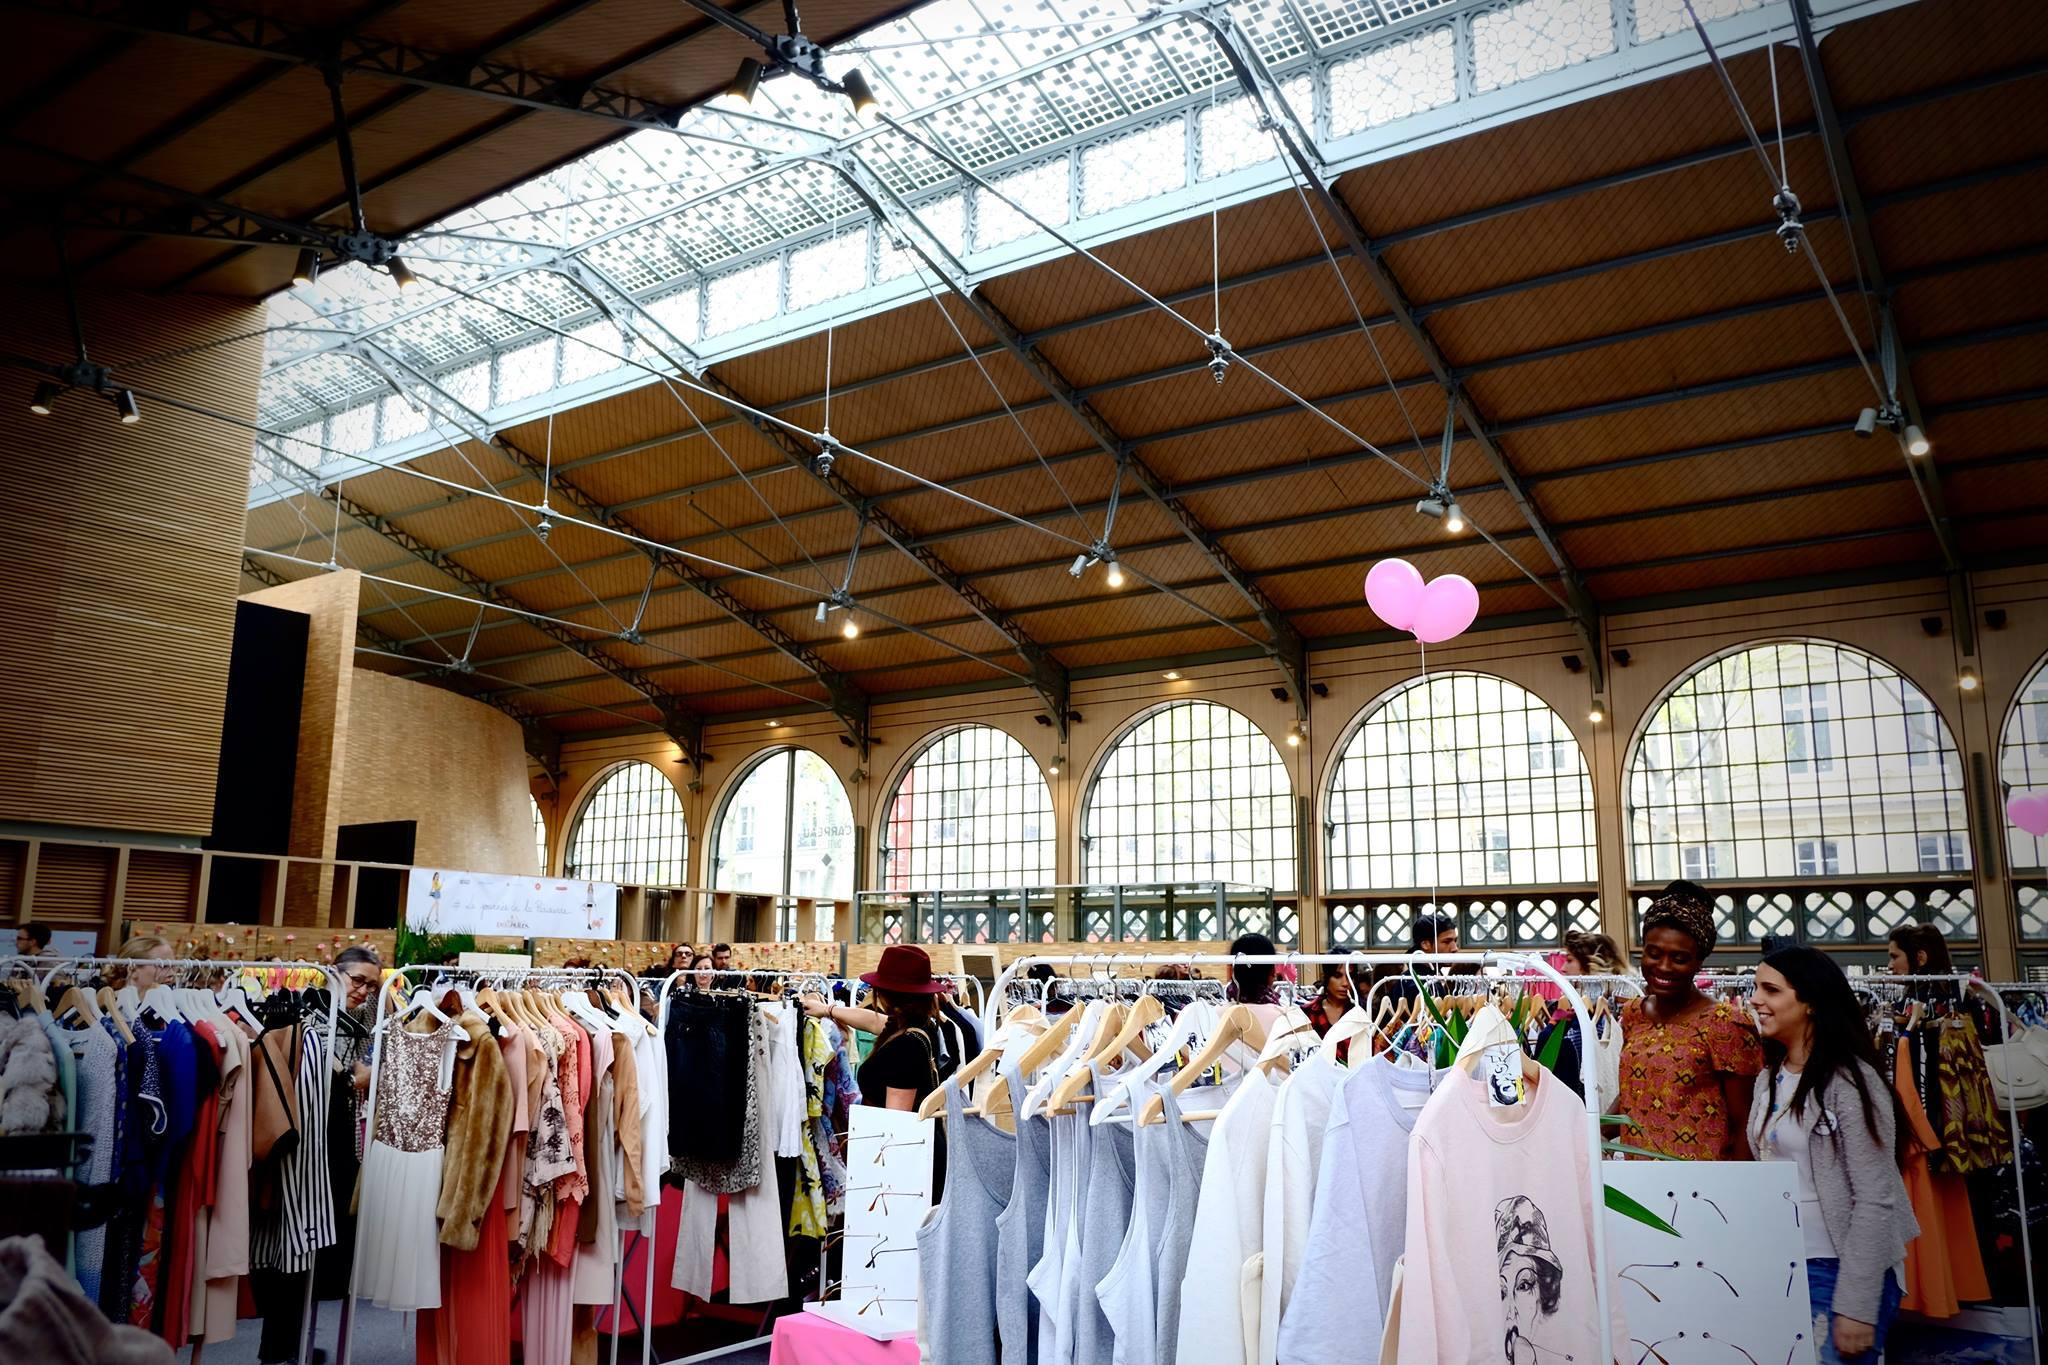 Vide grenier paris le guide des braderies parisiennes - Brocante a paris ce week end ...